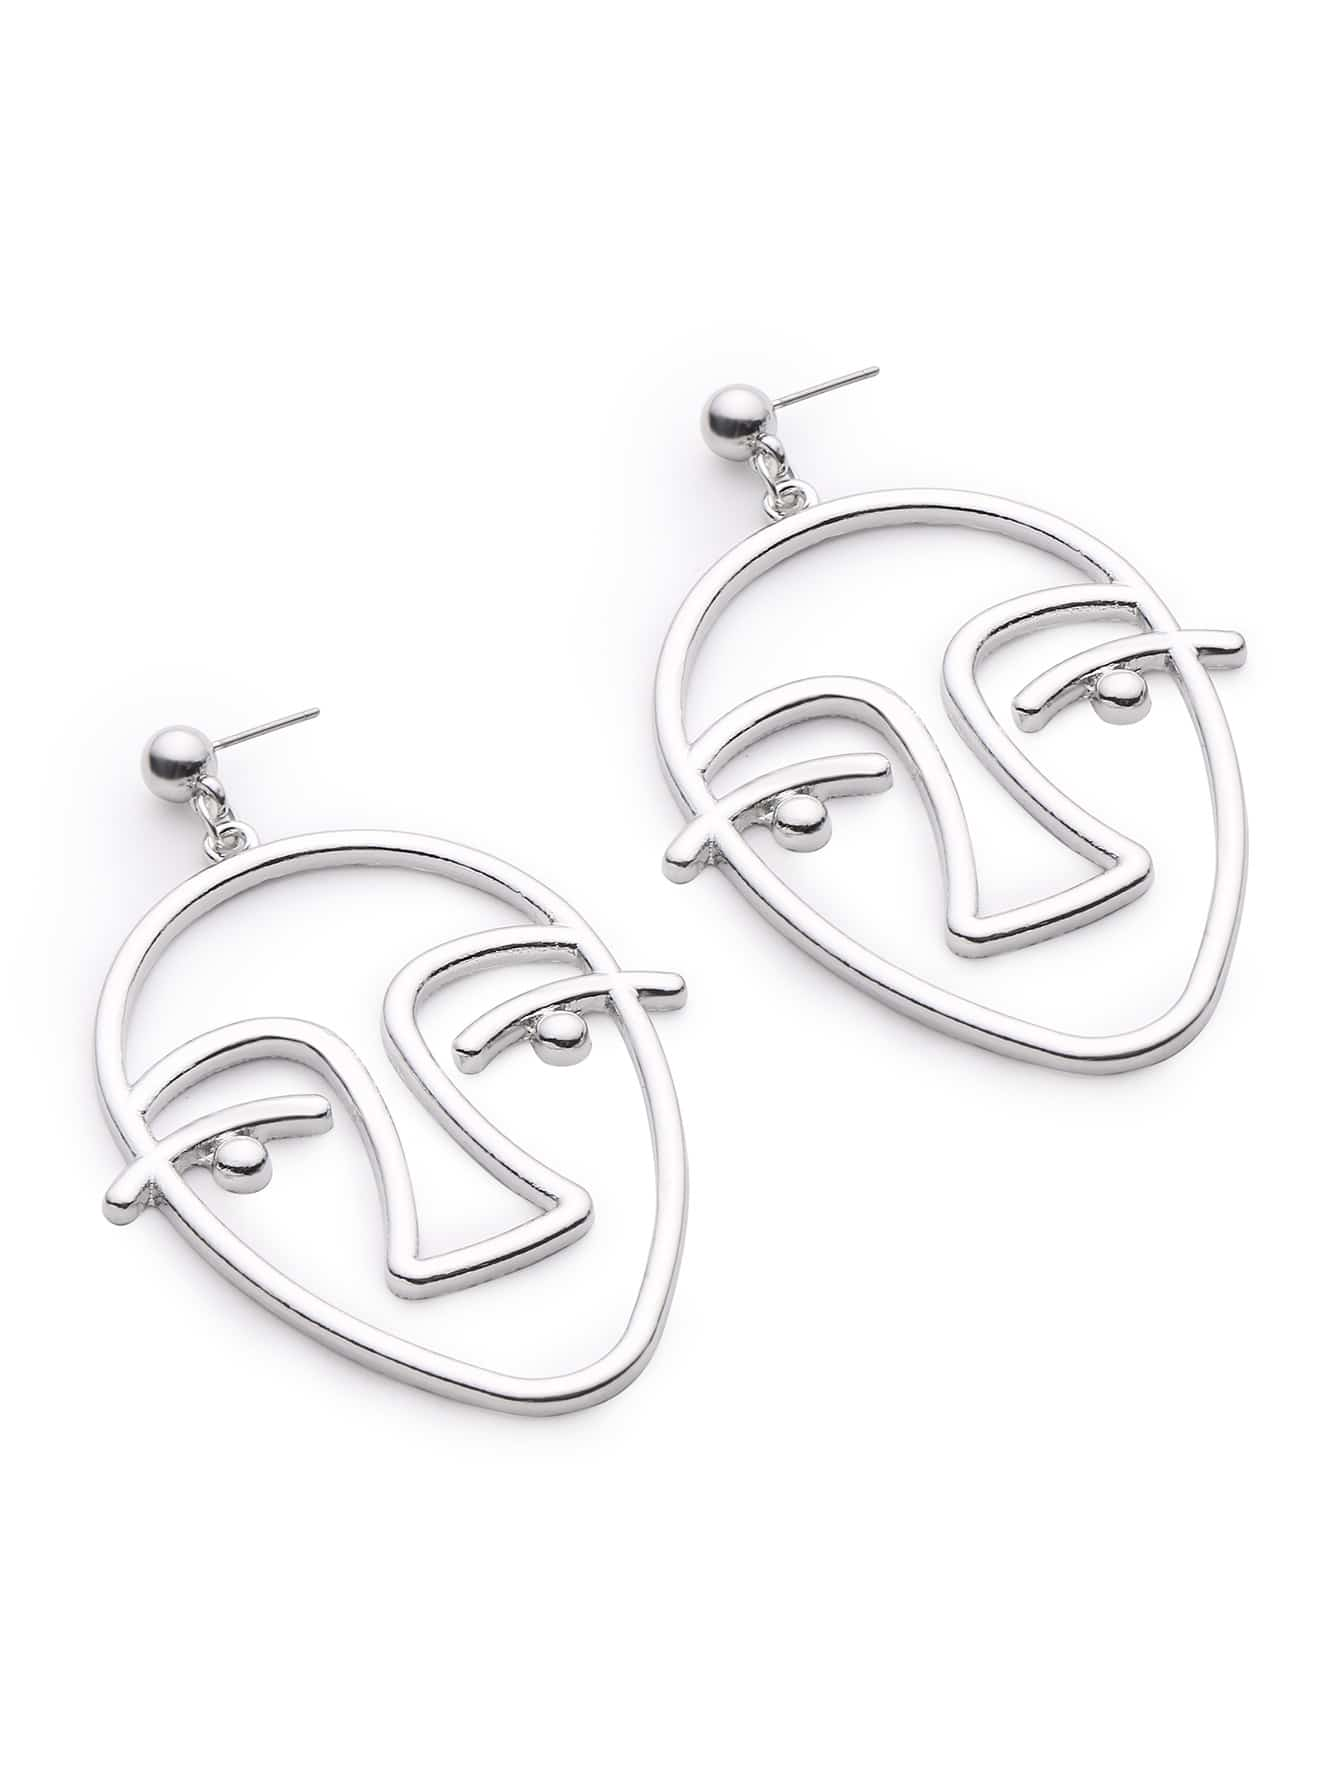 Metal Face Shaped Drop Earrings hollow water drop shaped drop earrings